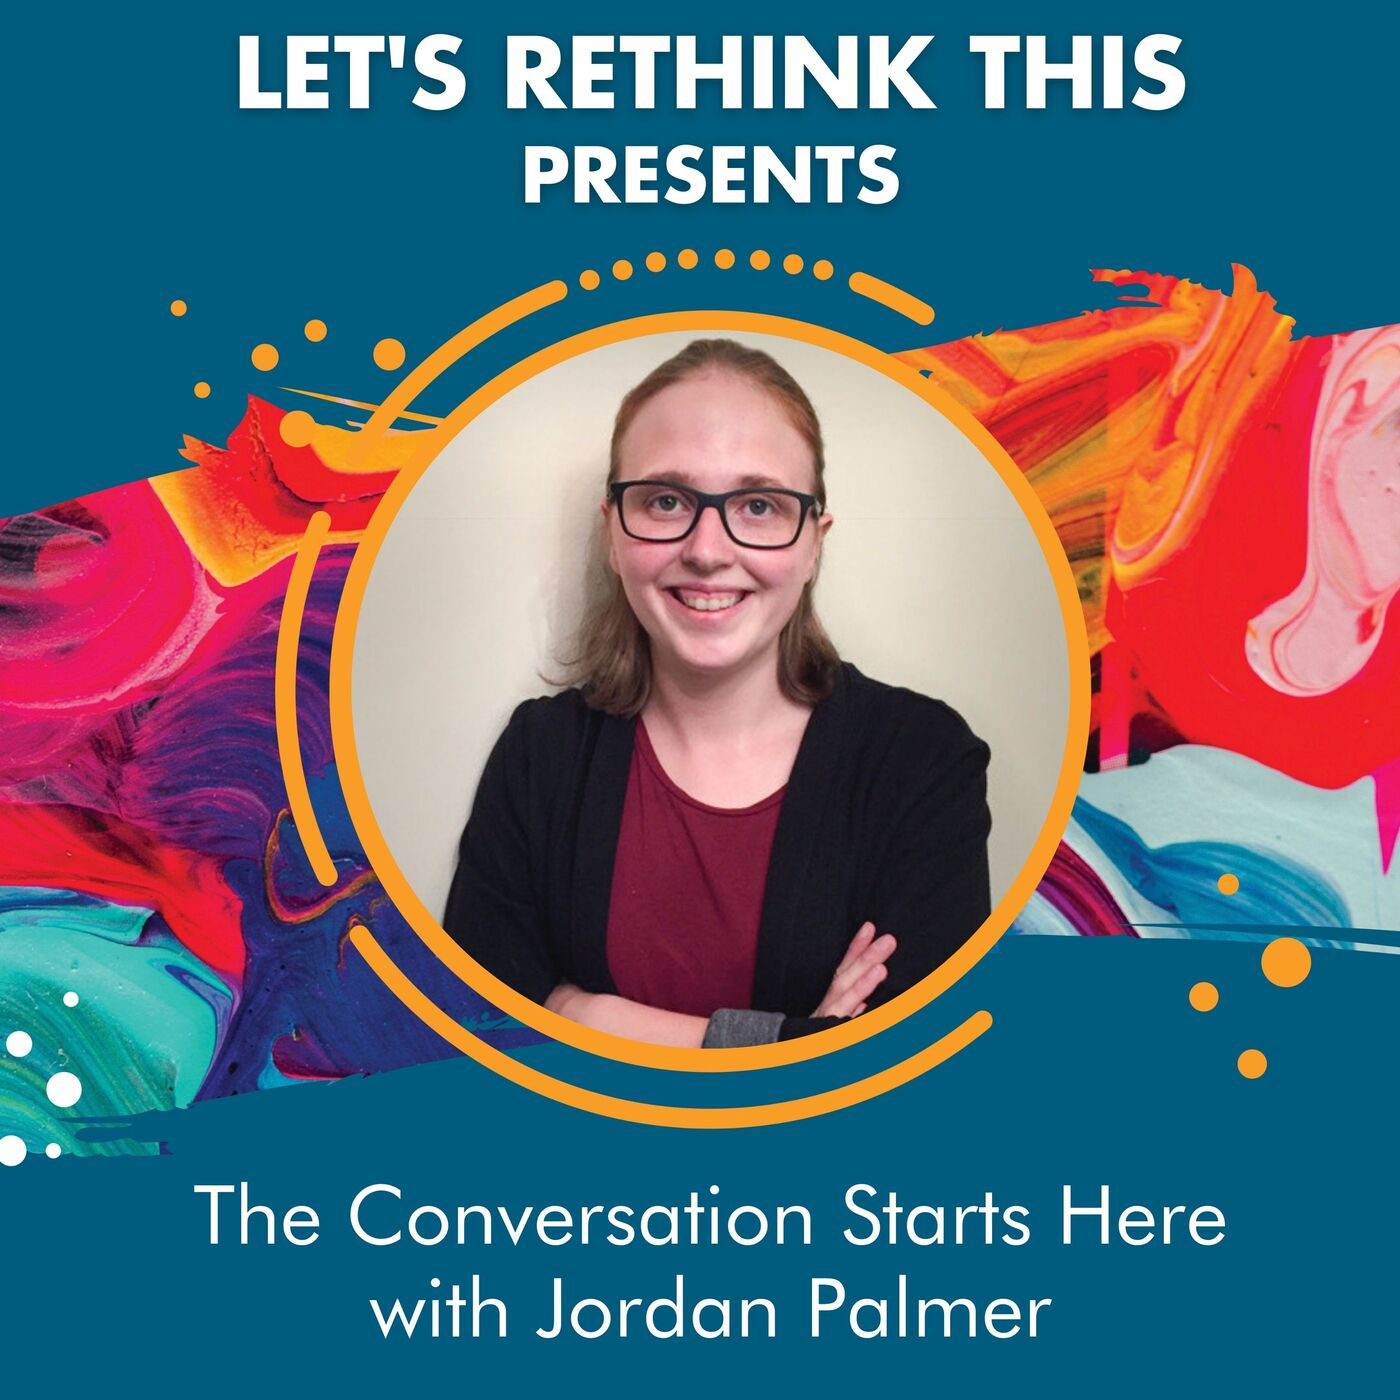 The Conversation Starts Here with Jordan Palmer